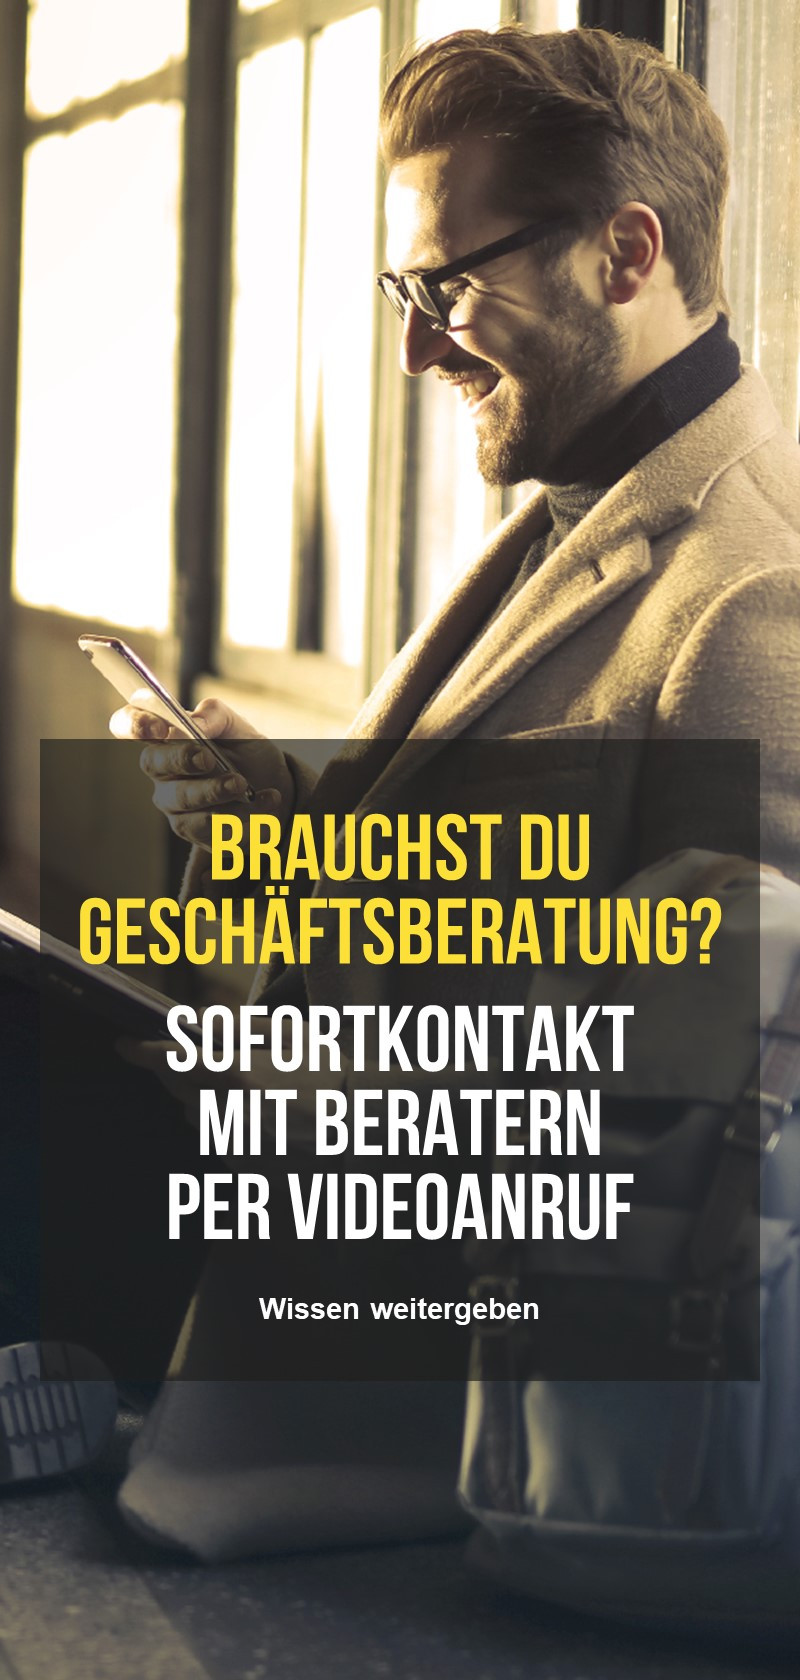 Marketing-, Social Media- und Unternehmensberater